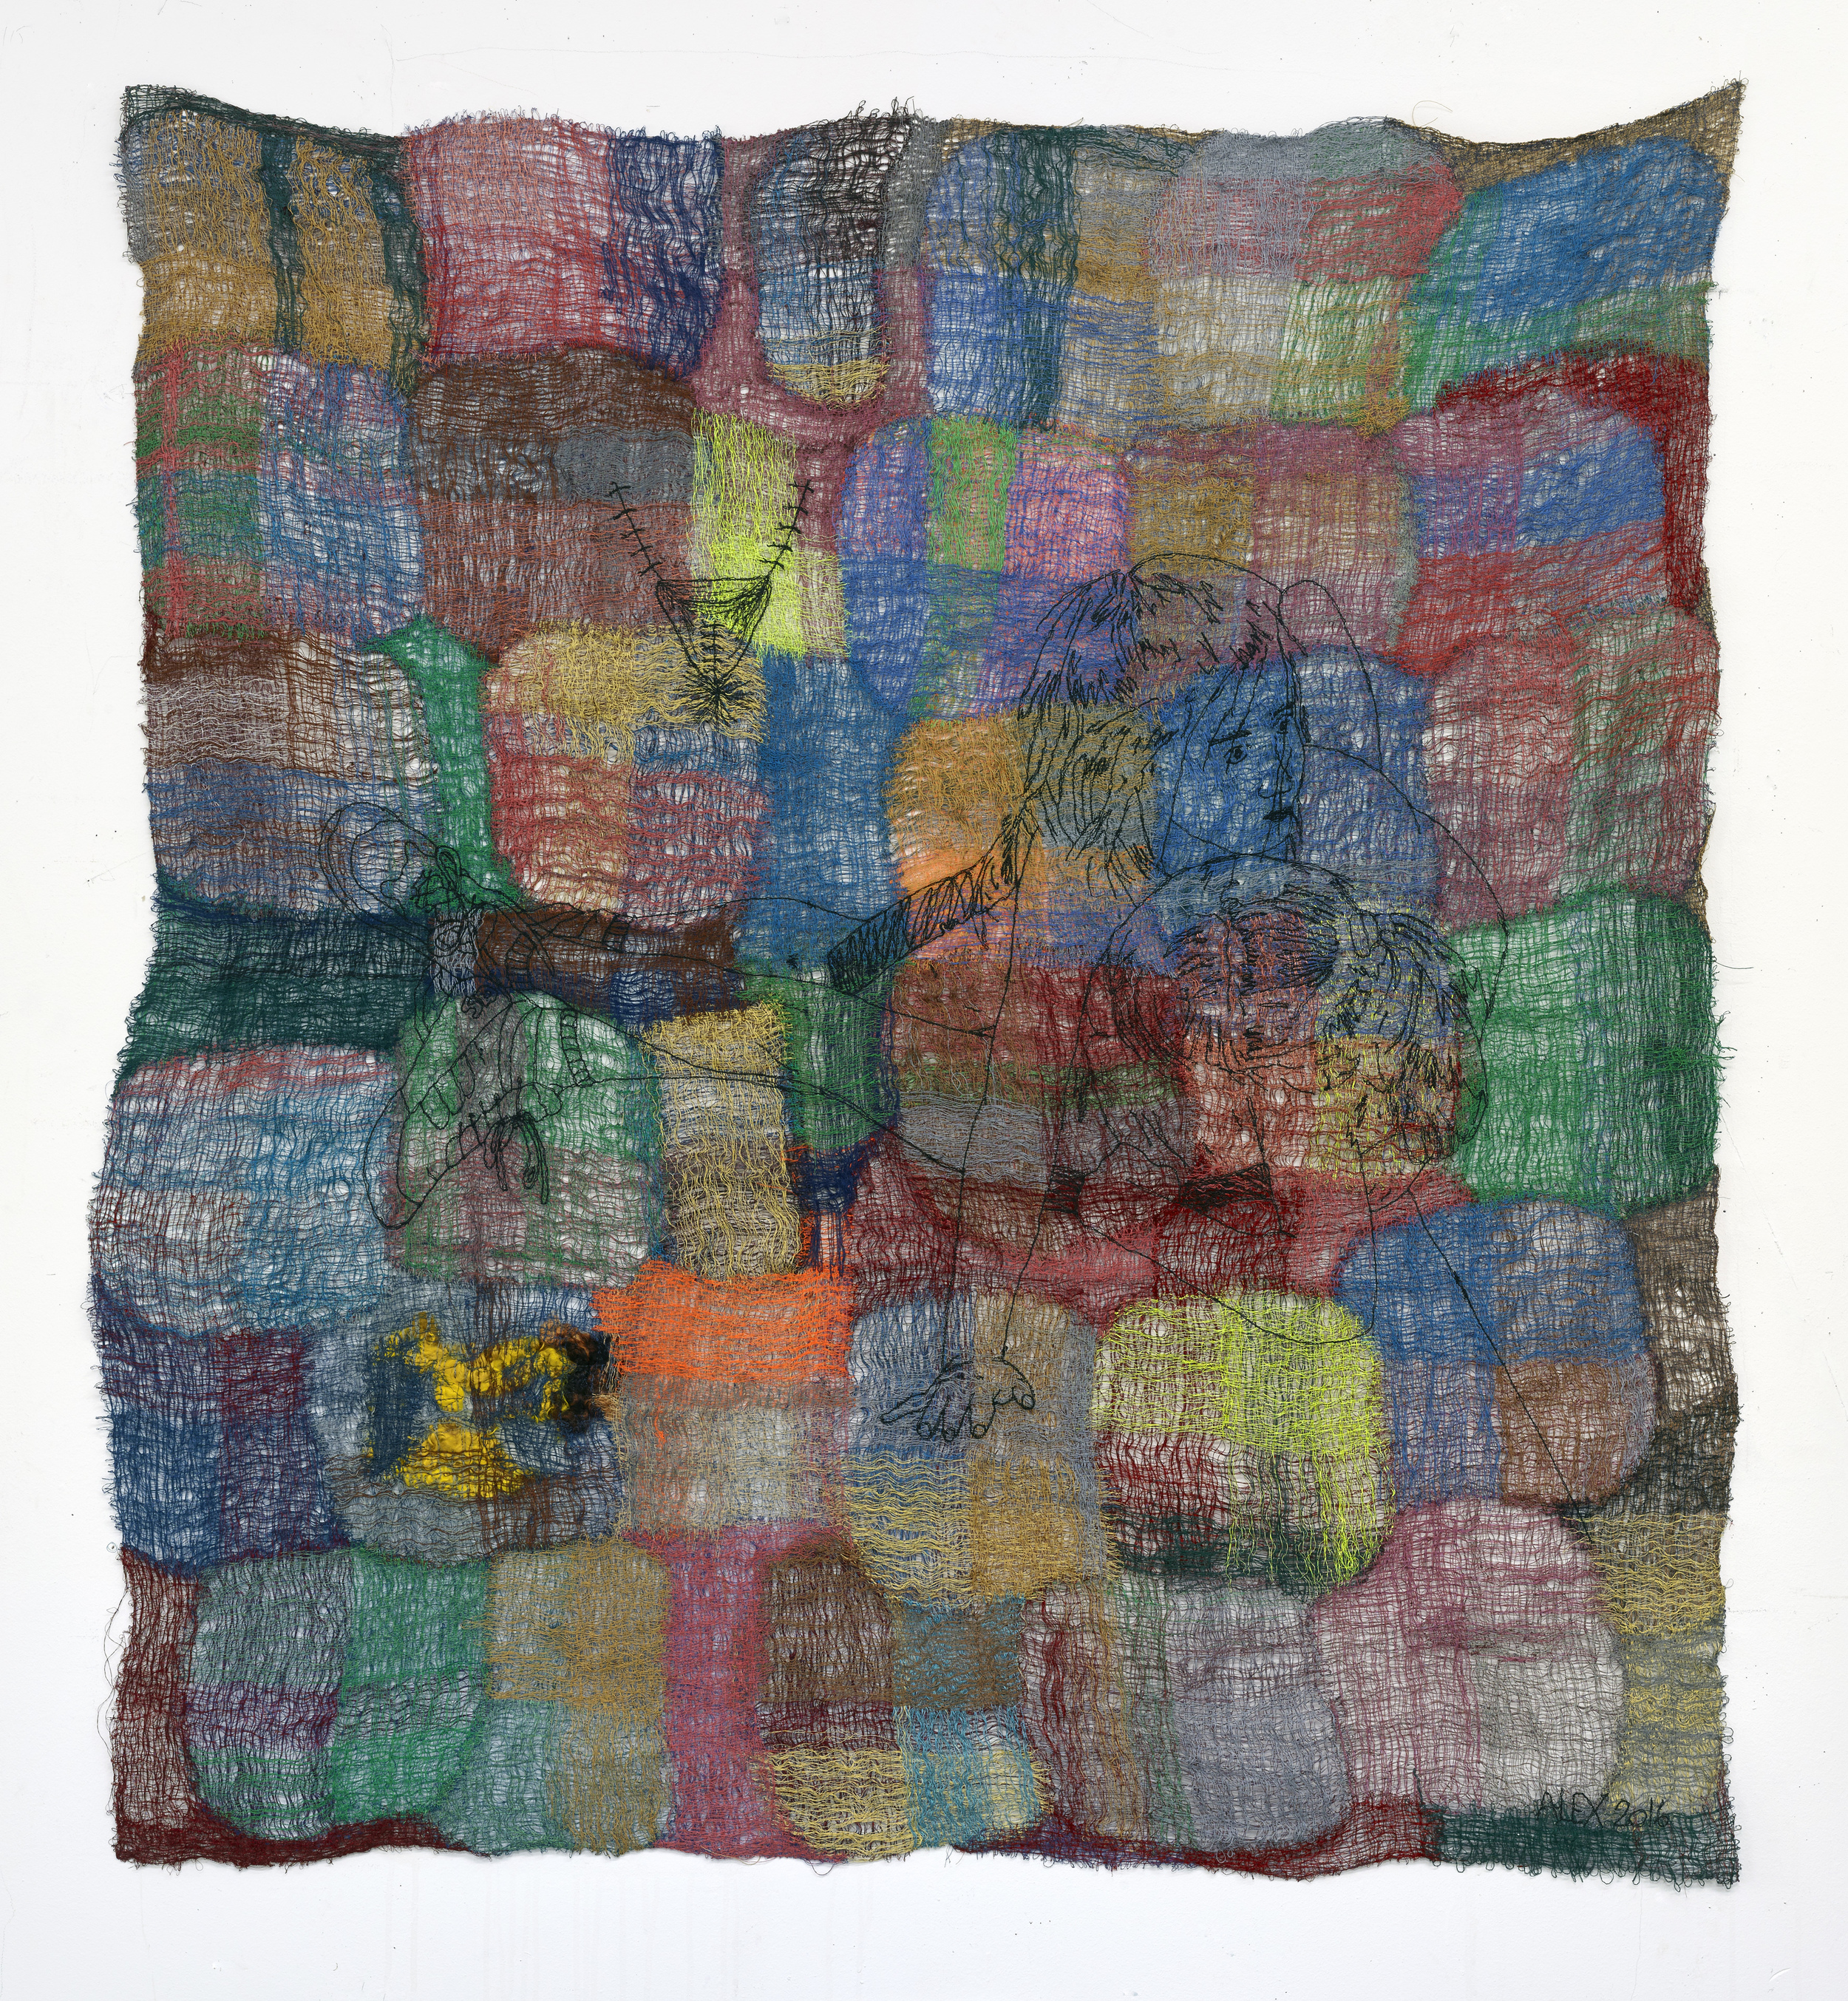 Rupture 2016 Polyester, wool, viscose 140 x 128 cm / 55.1 x 50.3 in